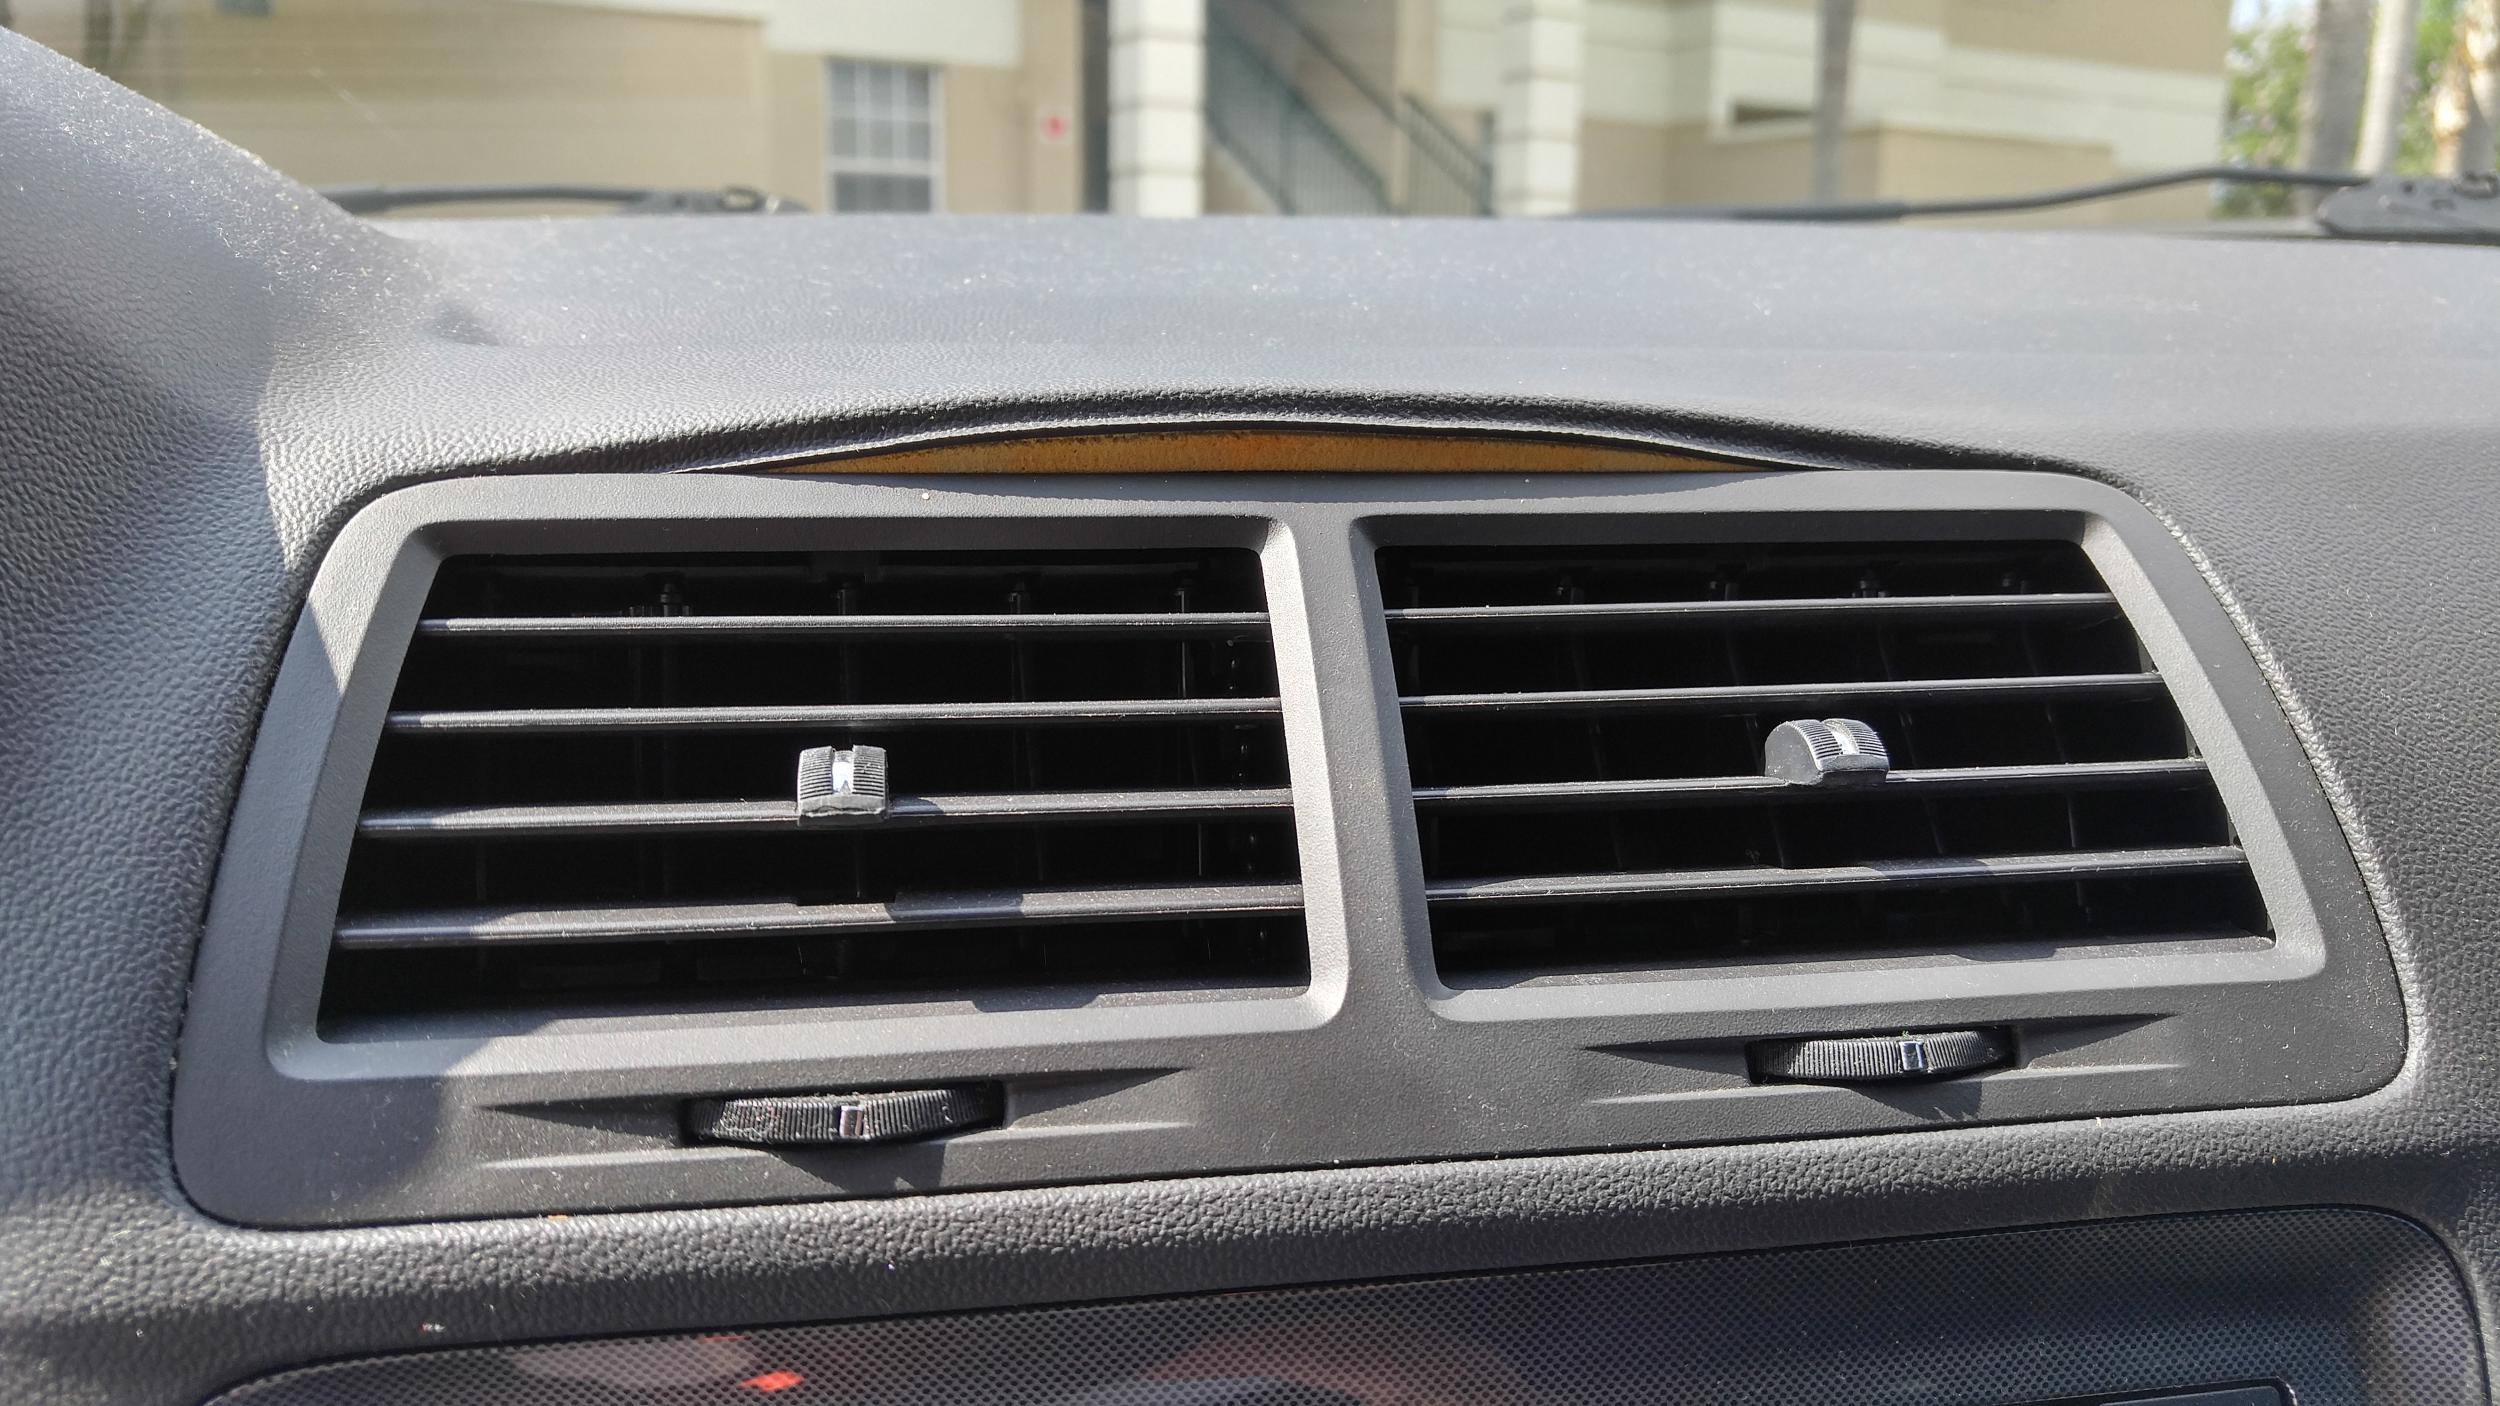 Dash lifting above air vent